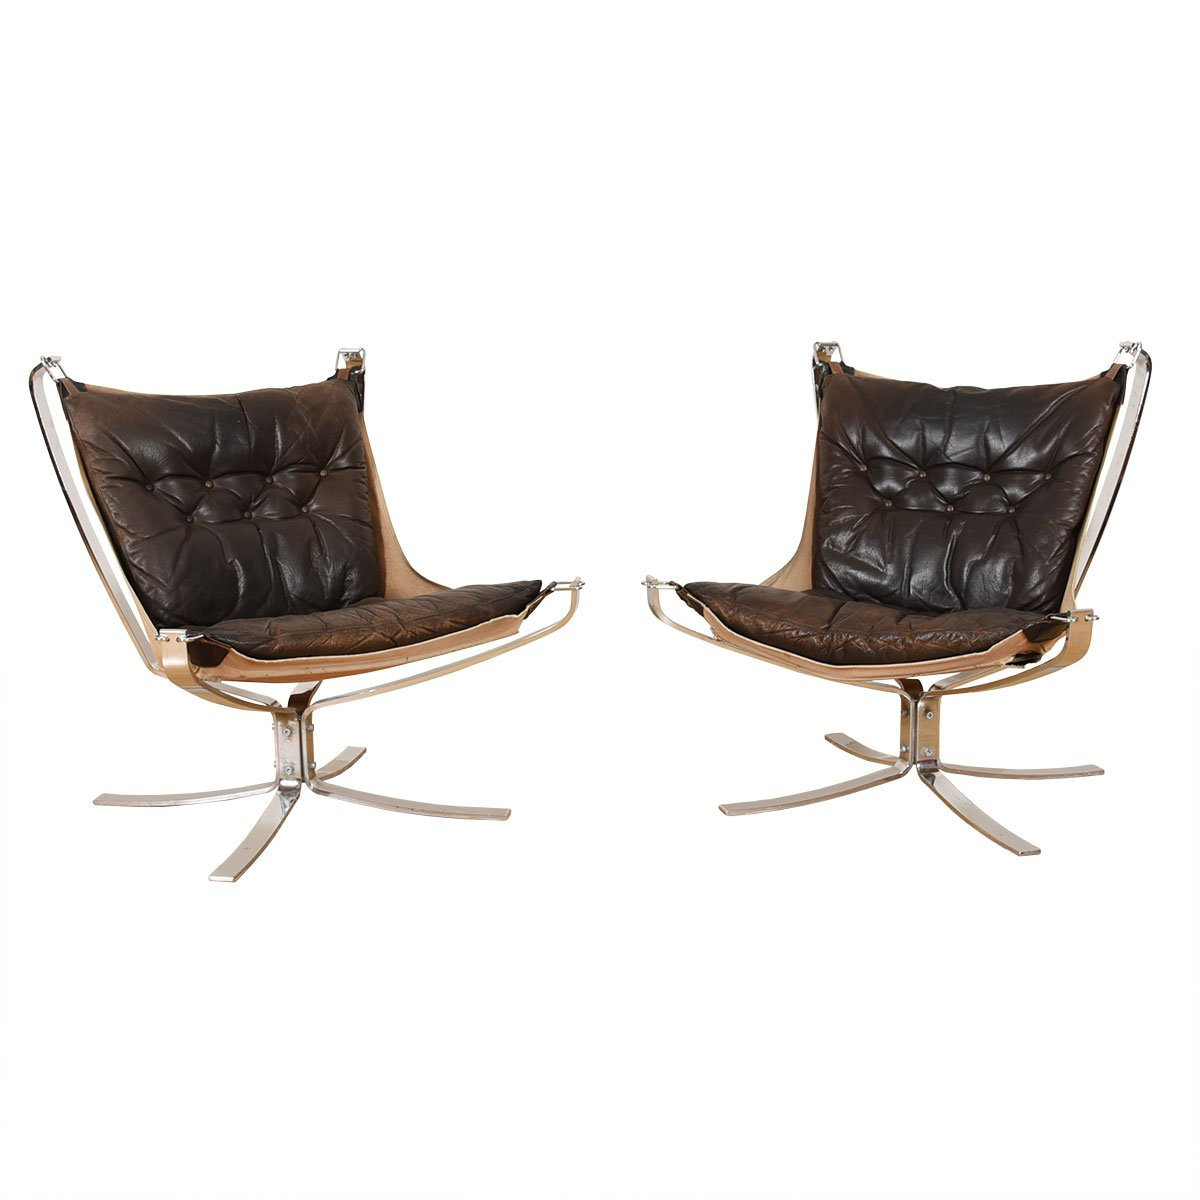 Rare Pair of Chrome & Leather Falcon Chairs.